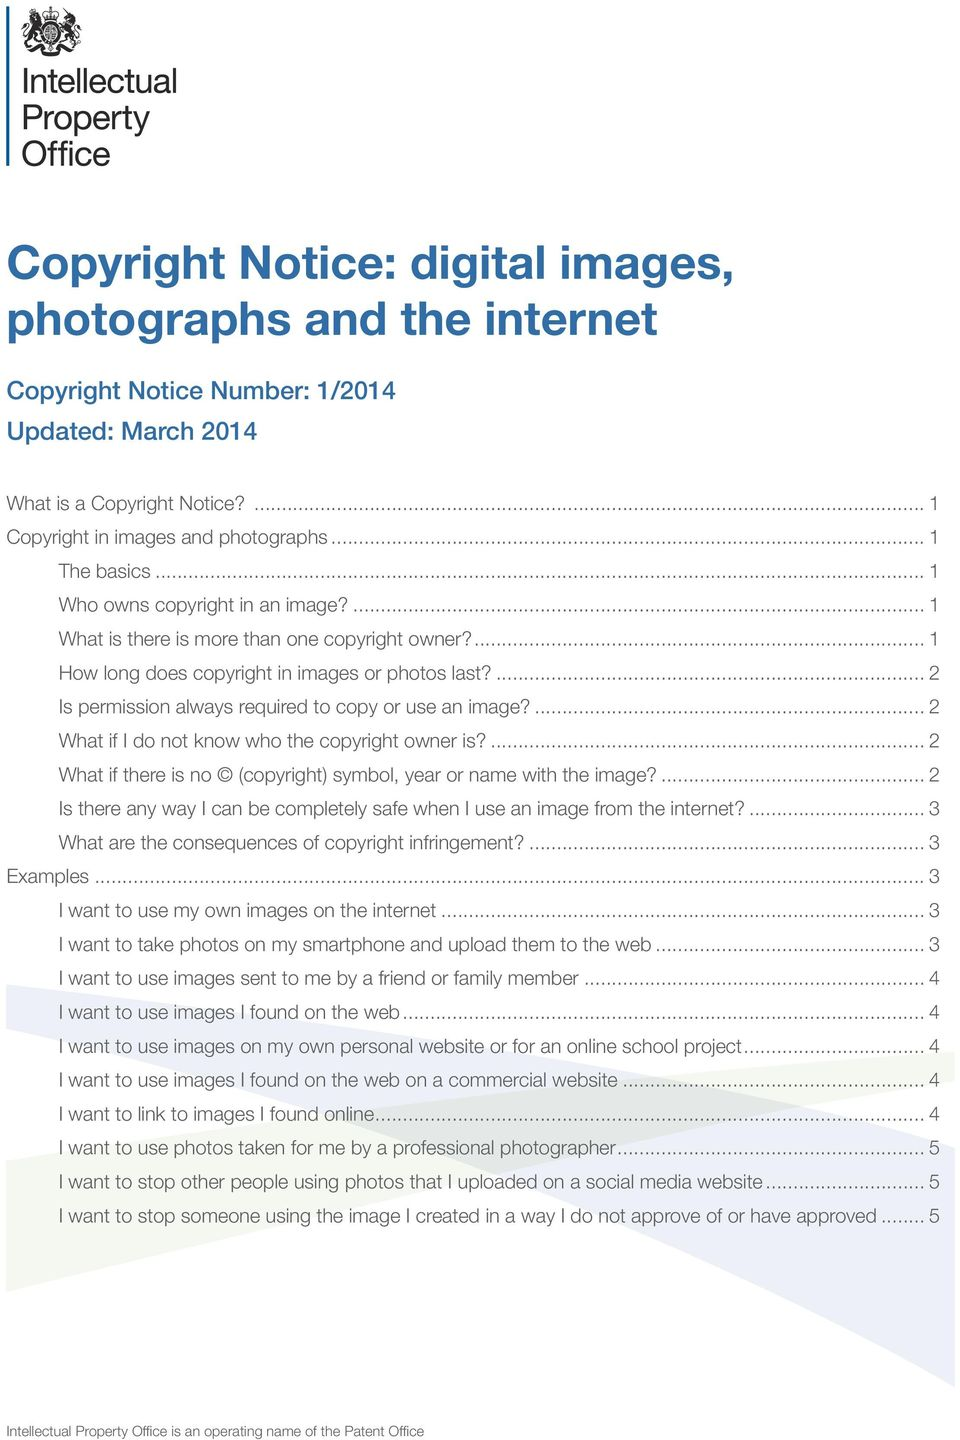 ... 2 Is permission always required to copy or use an image?... 2 What if I do not know who the copyright owner is?... 2 What if there is no (copyright) symbol, year or name with the image?